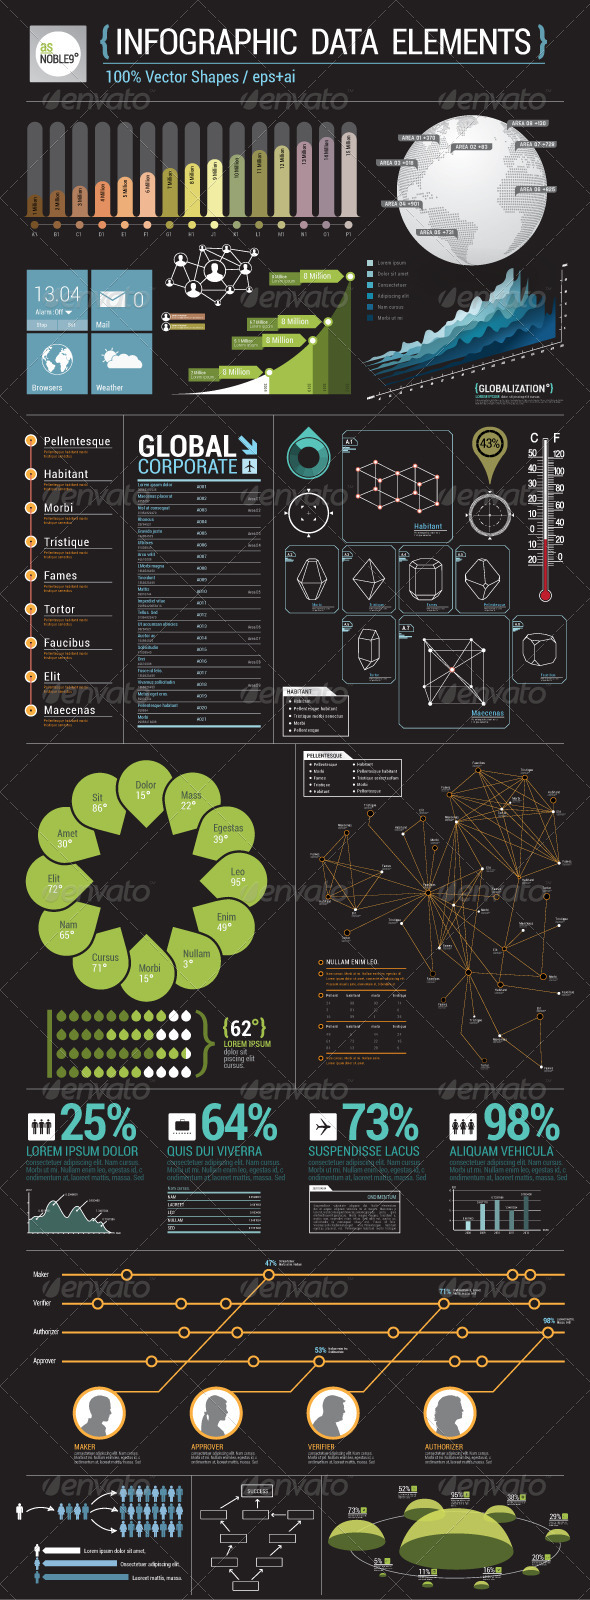 GraphicRiver Infographic Data Elements 2427542